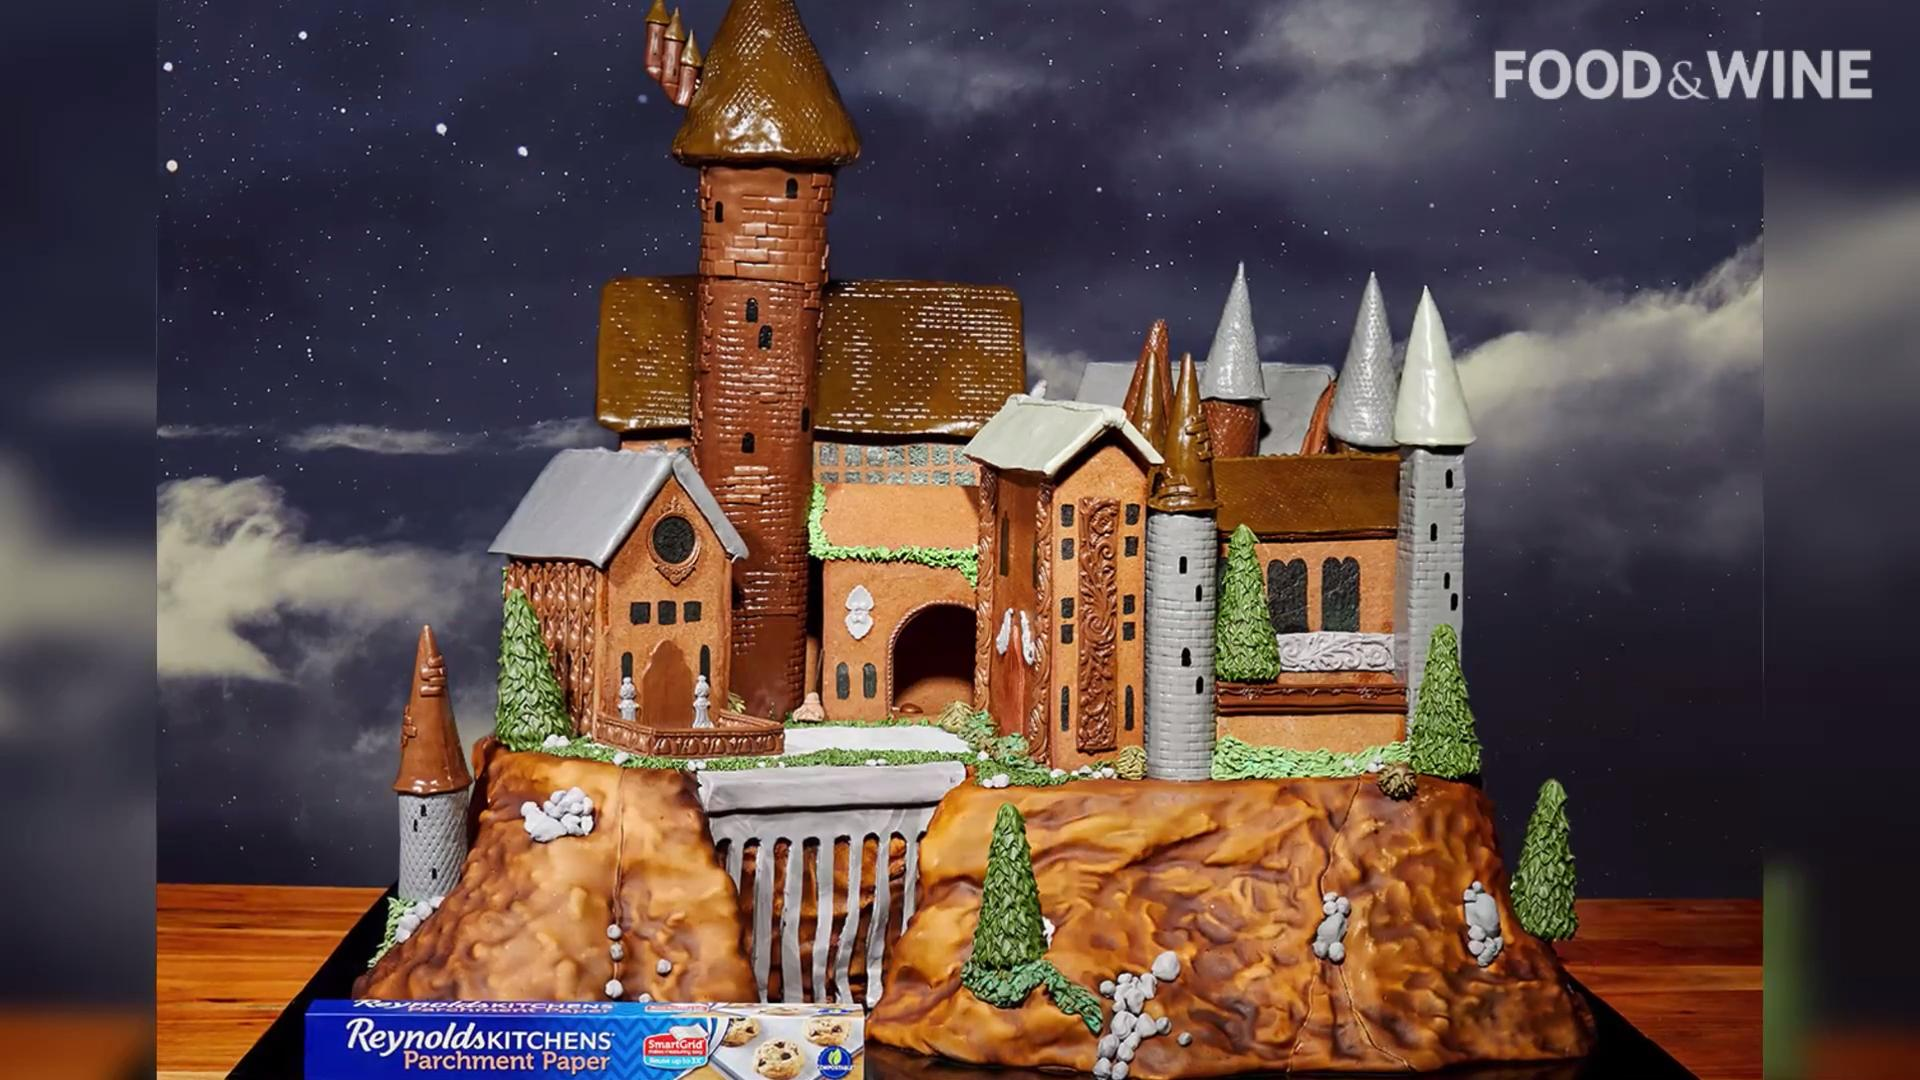 This Gingerbread Hogwarts Castle Is a Magical Feat of Cookie